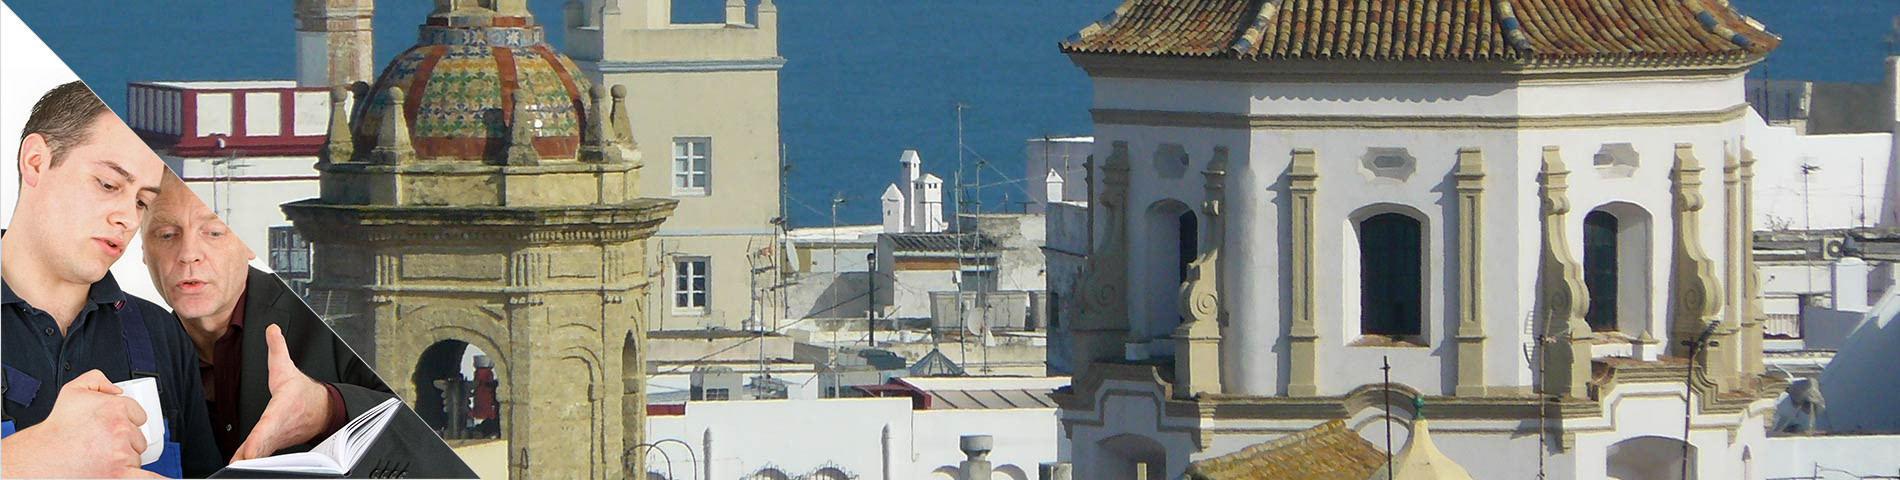 Vejer de la Frontera - One-to-one